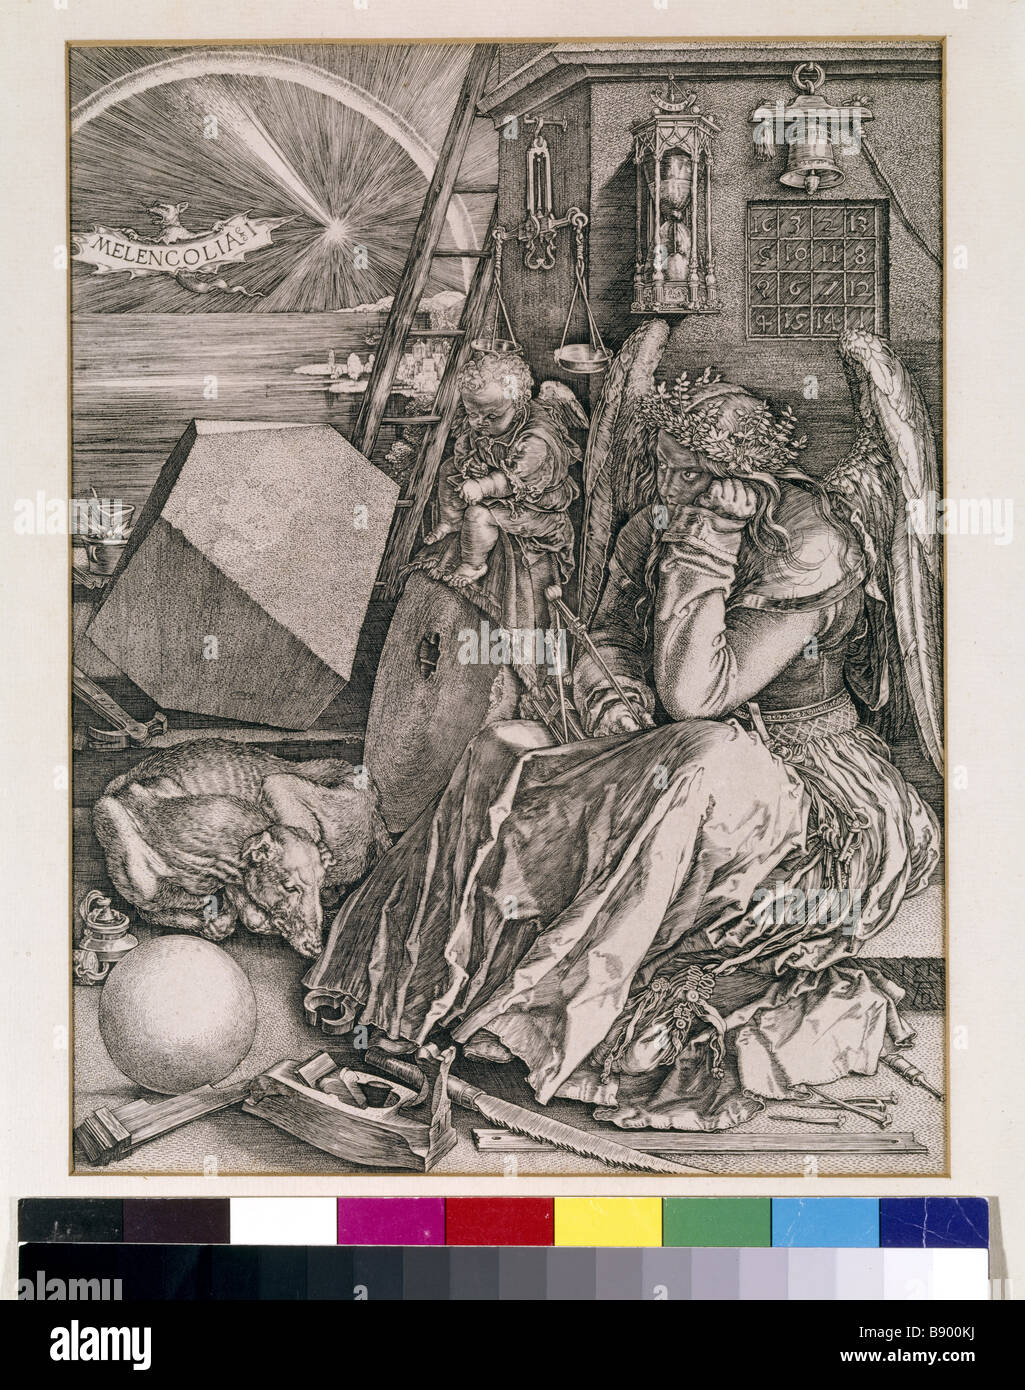 MELANCHOLIA woodcut after Durer in the Study at Woolsthorpe Manor - Stock Image